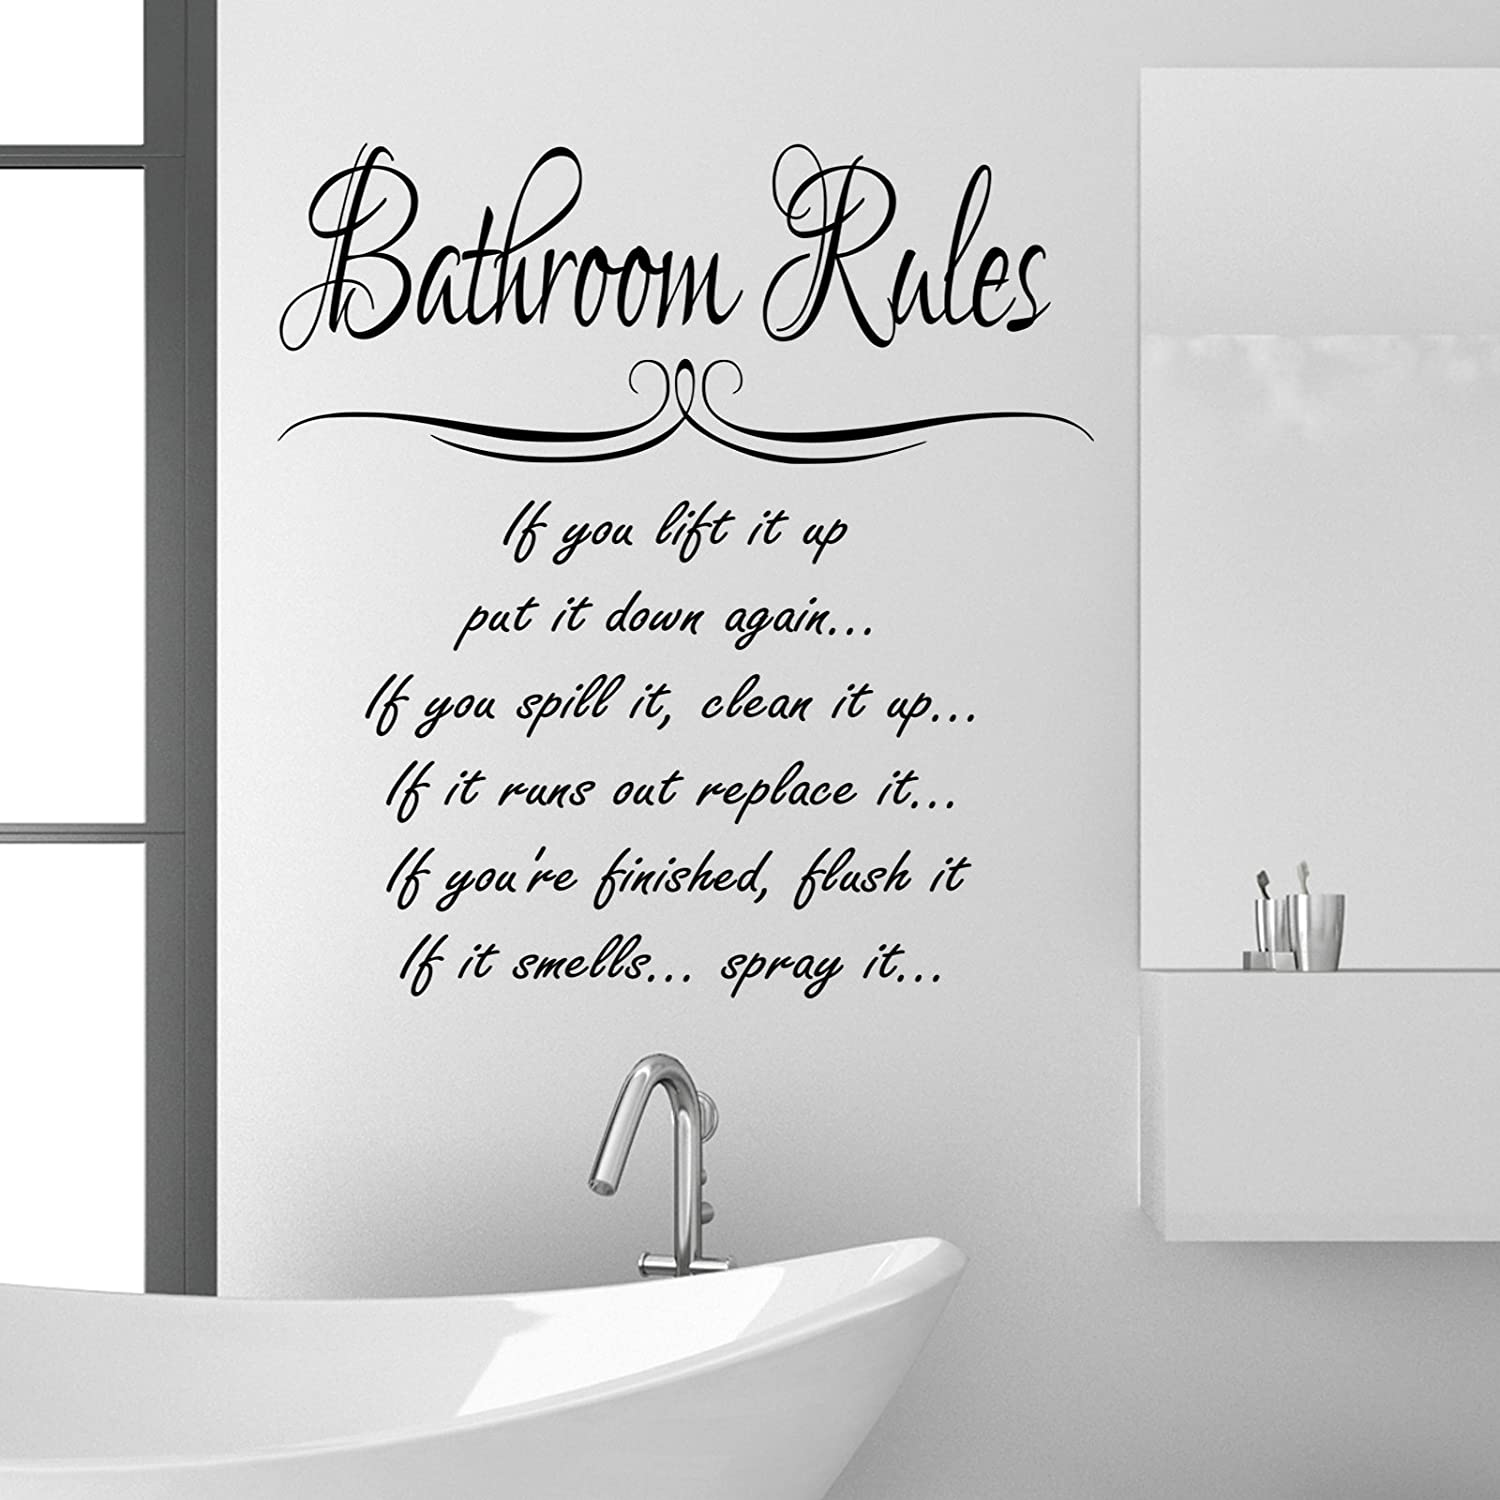 Bathroom Rules Wall Sticker Quote Funny Vinyl Decal Graphic Transfer Mural  Art 55x100 (Black): Amazon.co.uk: Kitchen U0026 Home Part 43